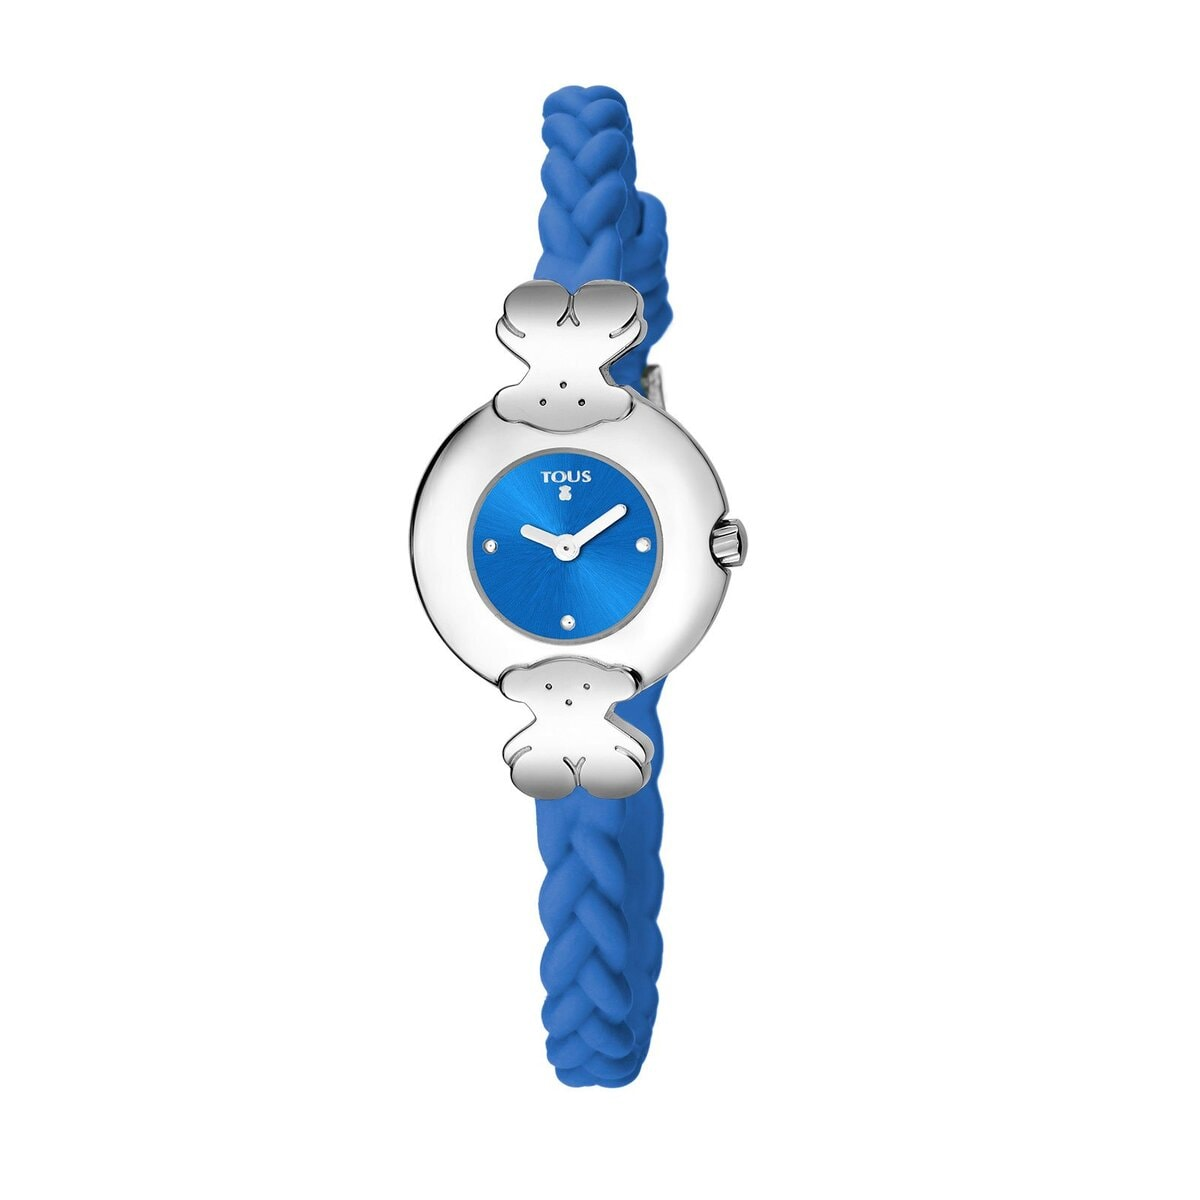 Steel Très Chic Watch with blue Silicone strap